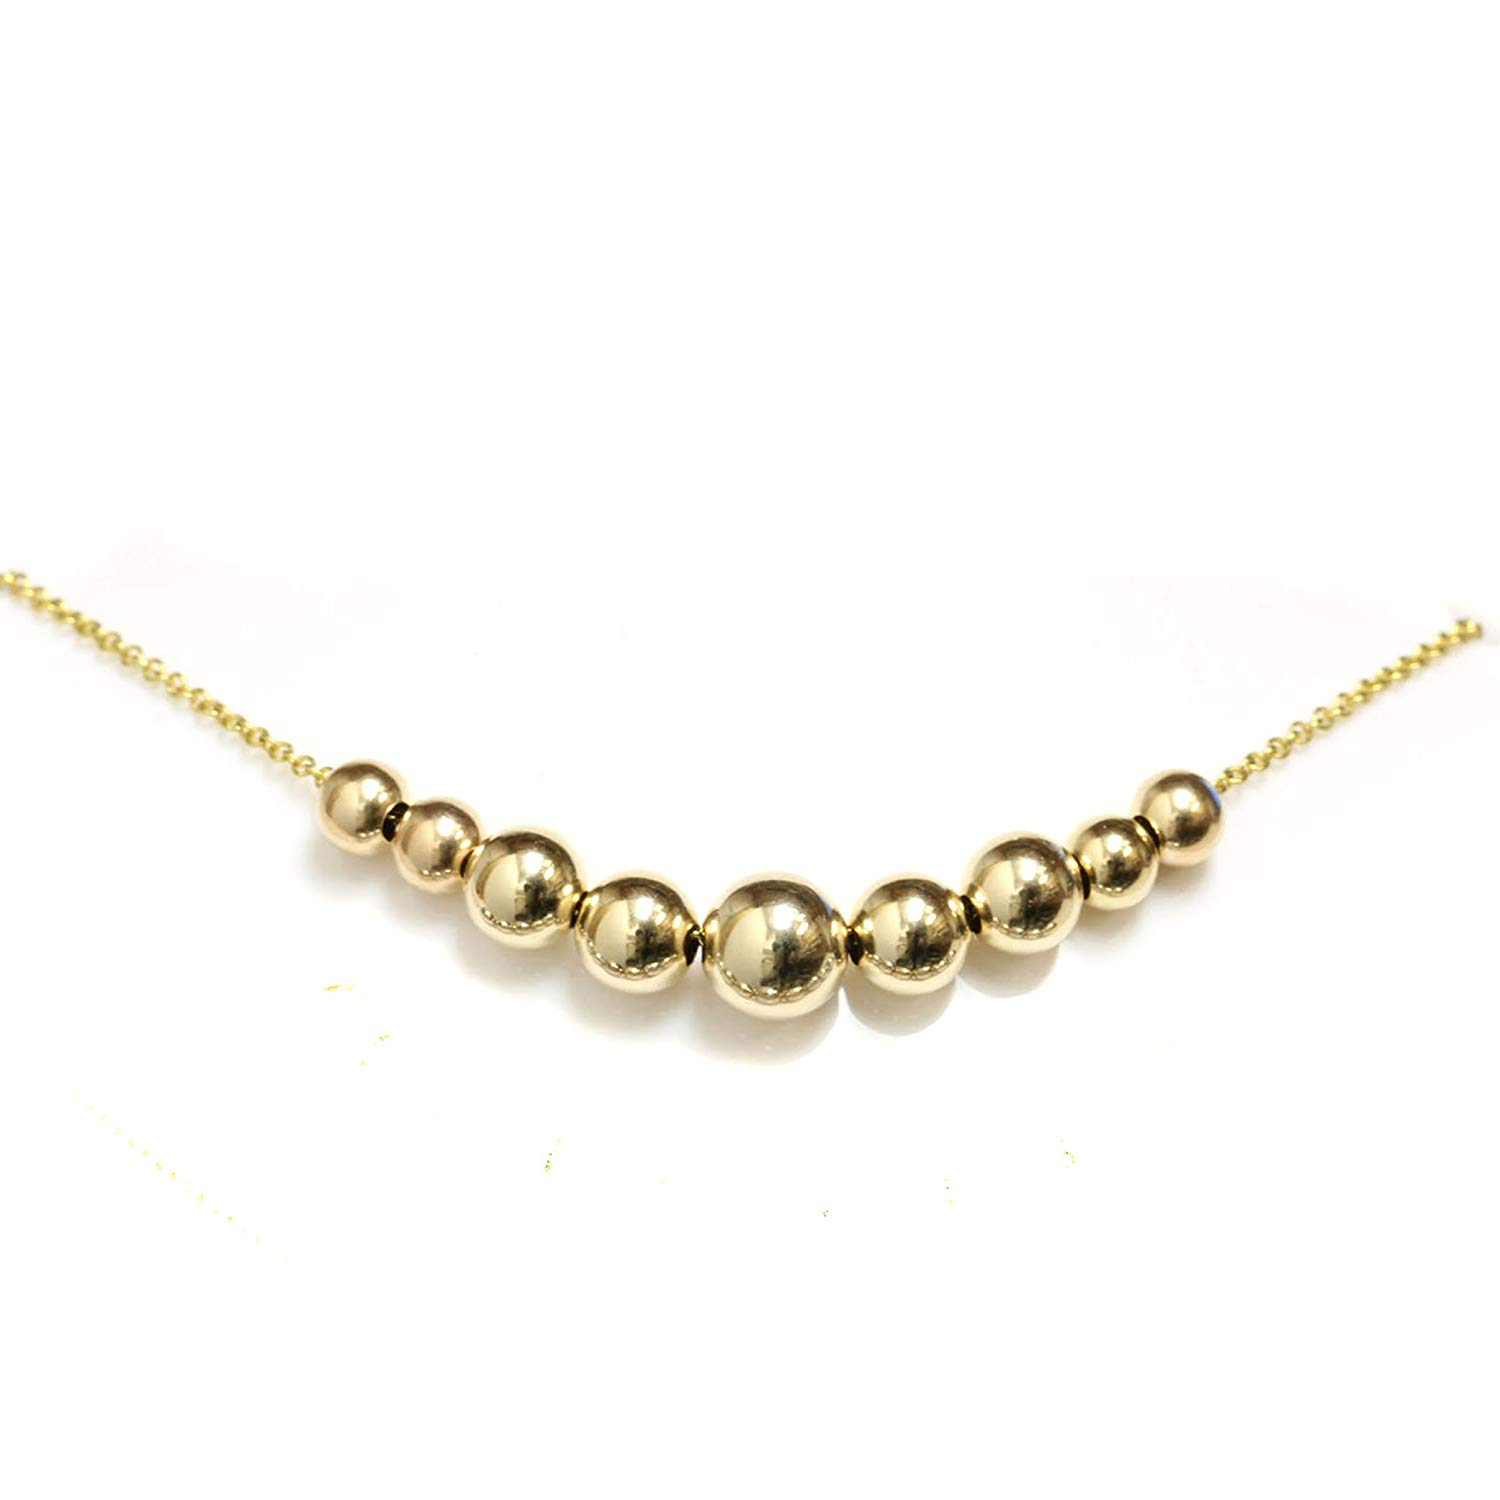 Chelsea Jewelry Basic Collections 3mm Wide 18K Gold Belcher Bead Chain Necklace